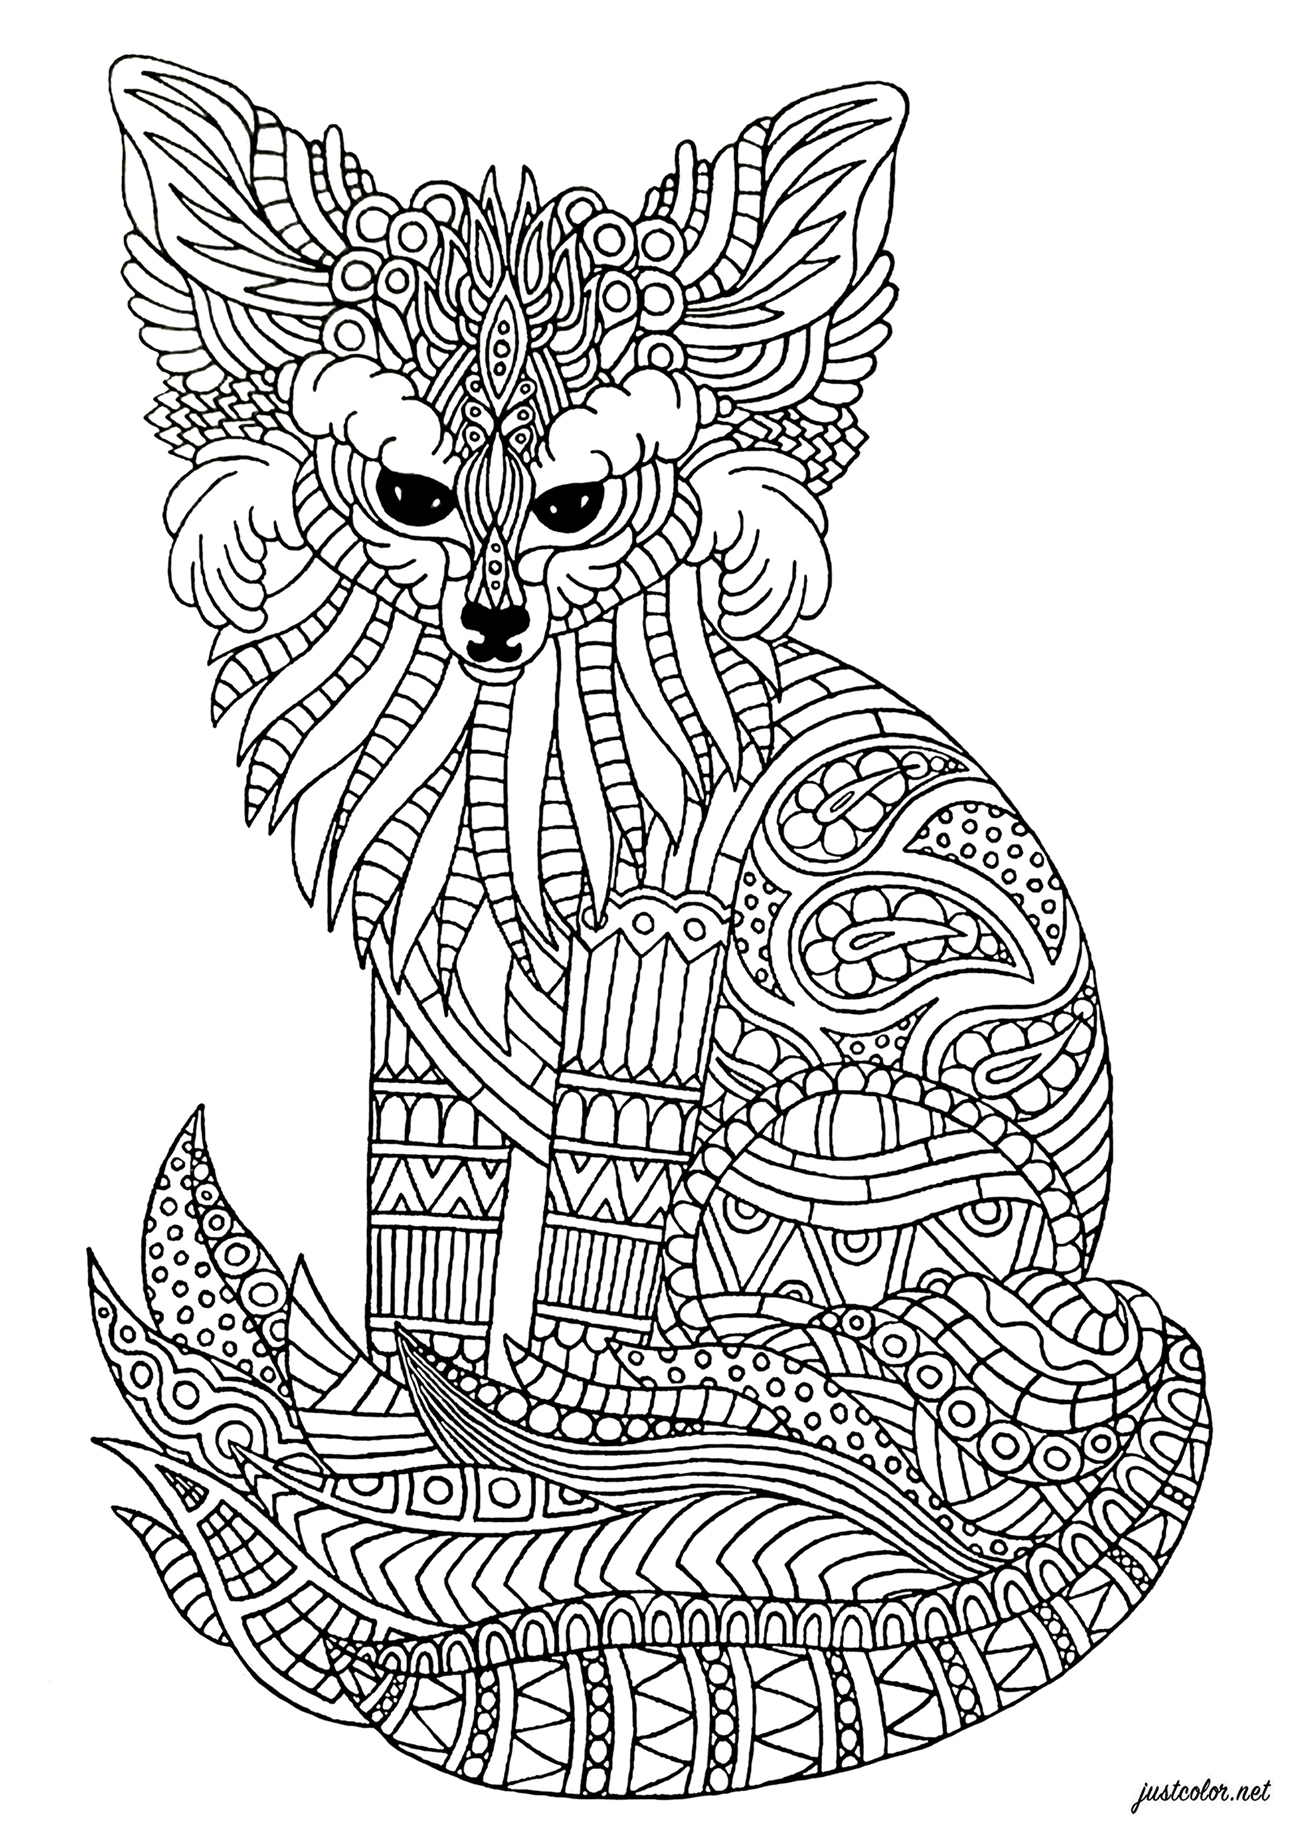 Color this complexly patterned sand fox and relax ...